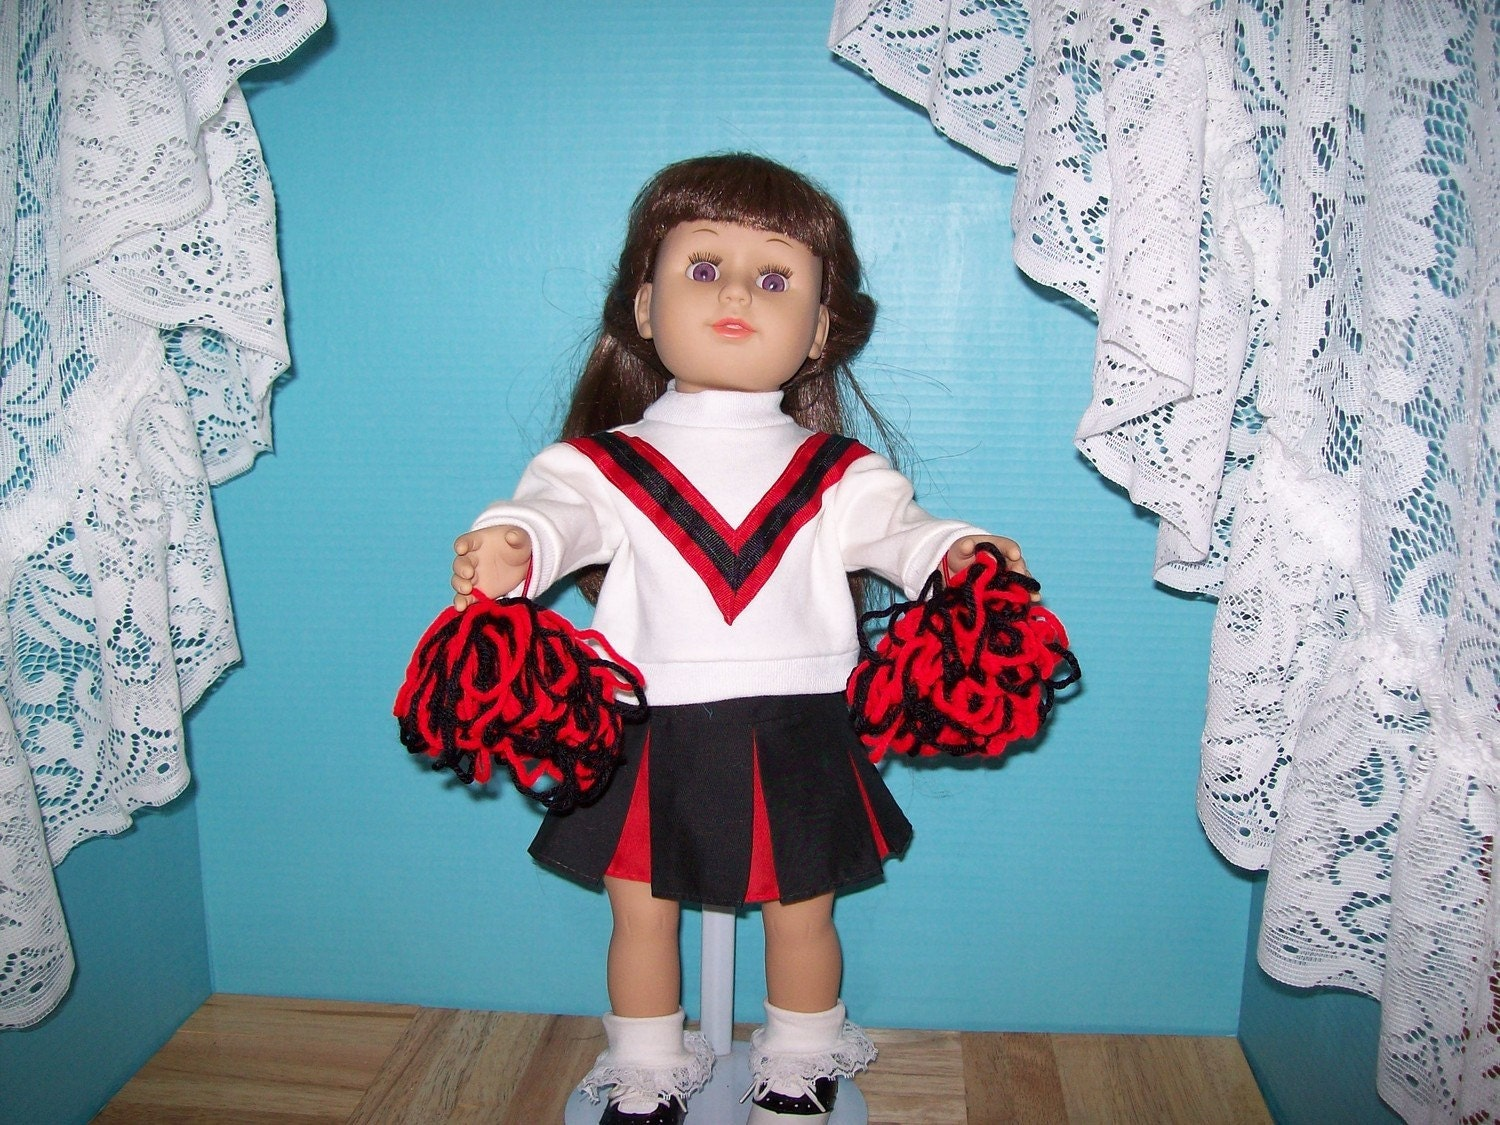 Red Black and White Cheerleader Outfit